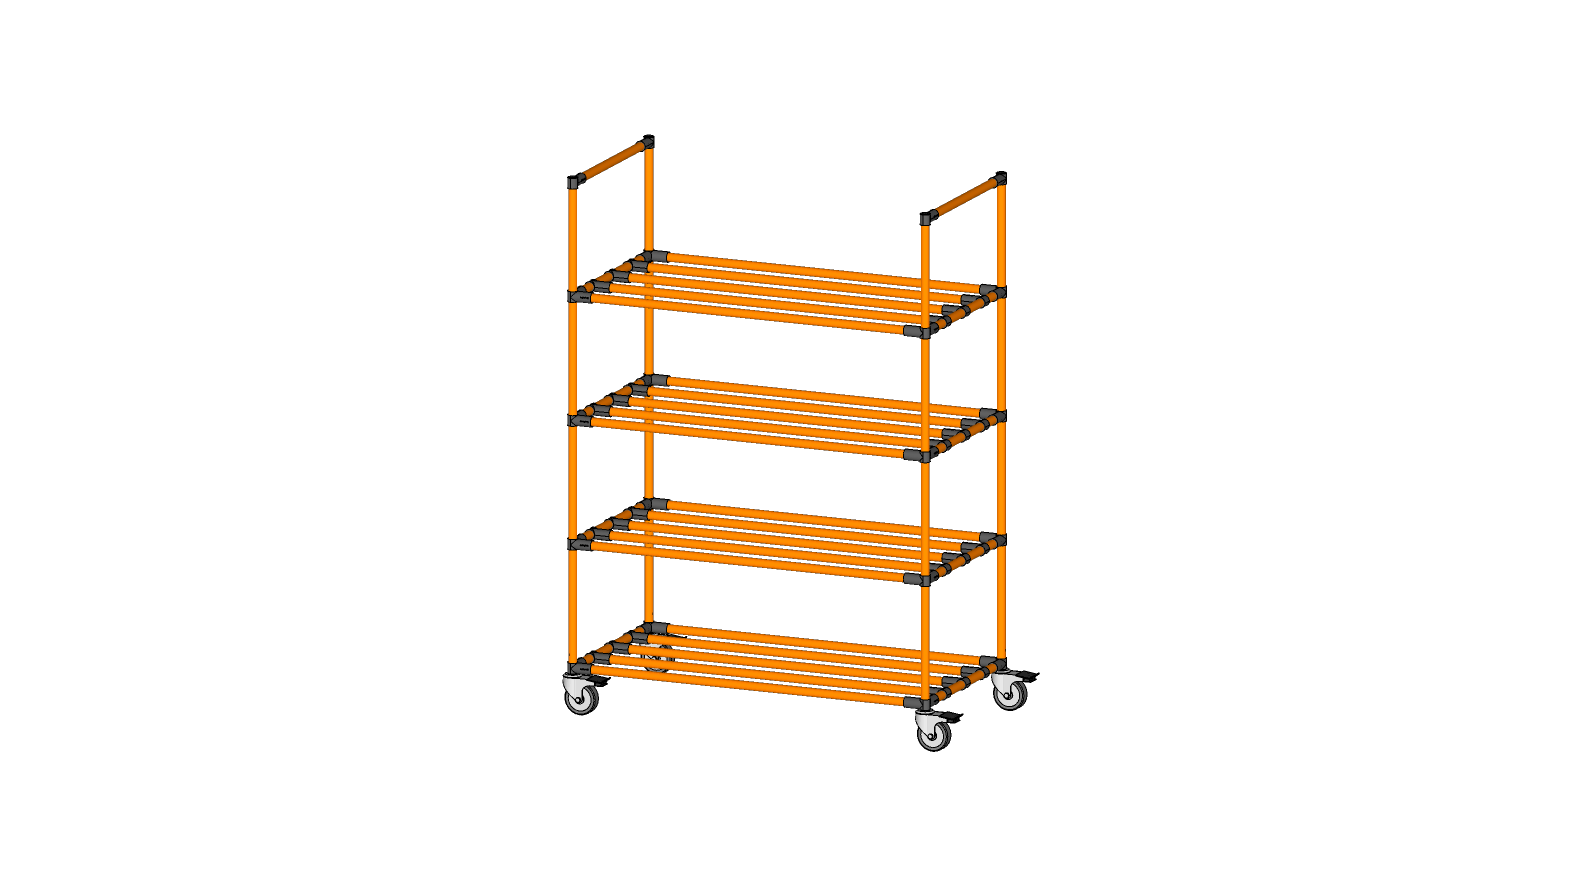 Shelving rack without decking